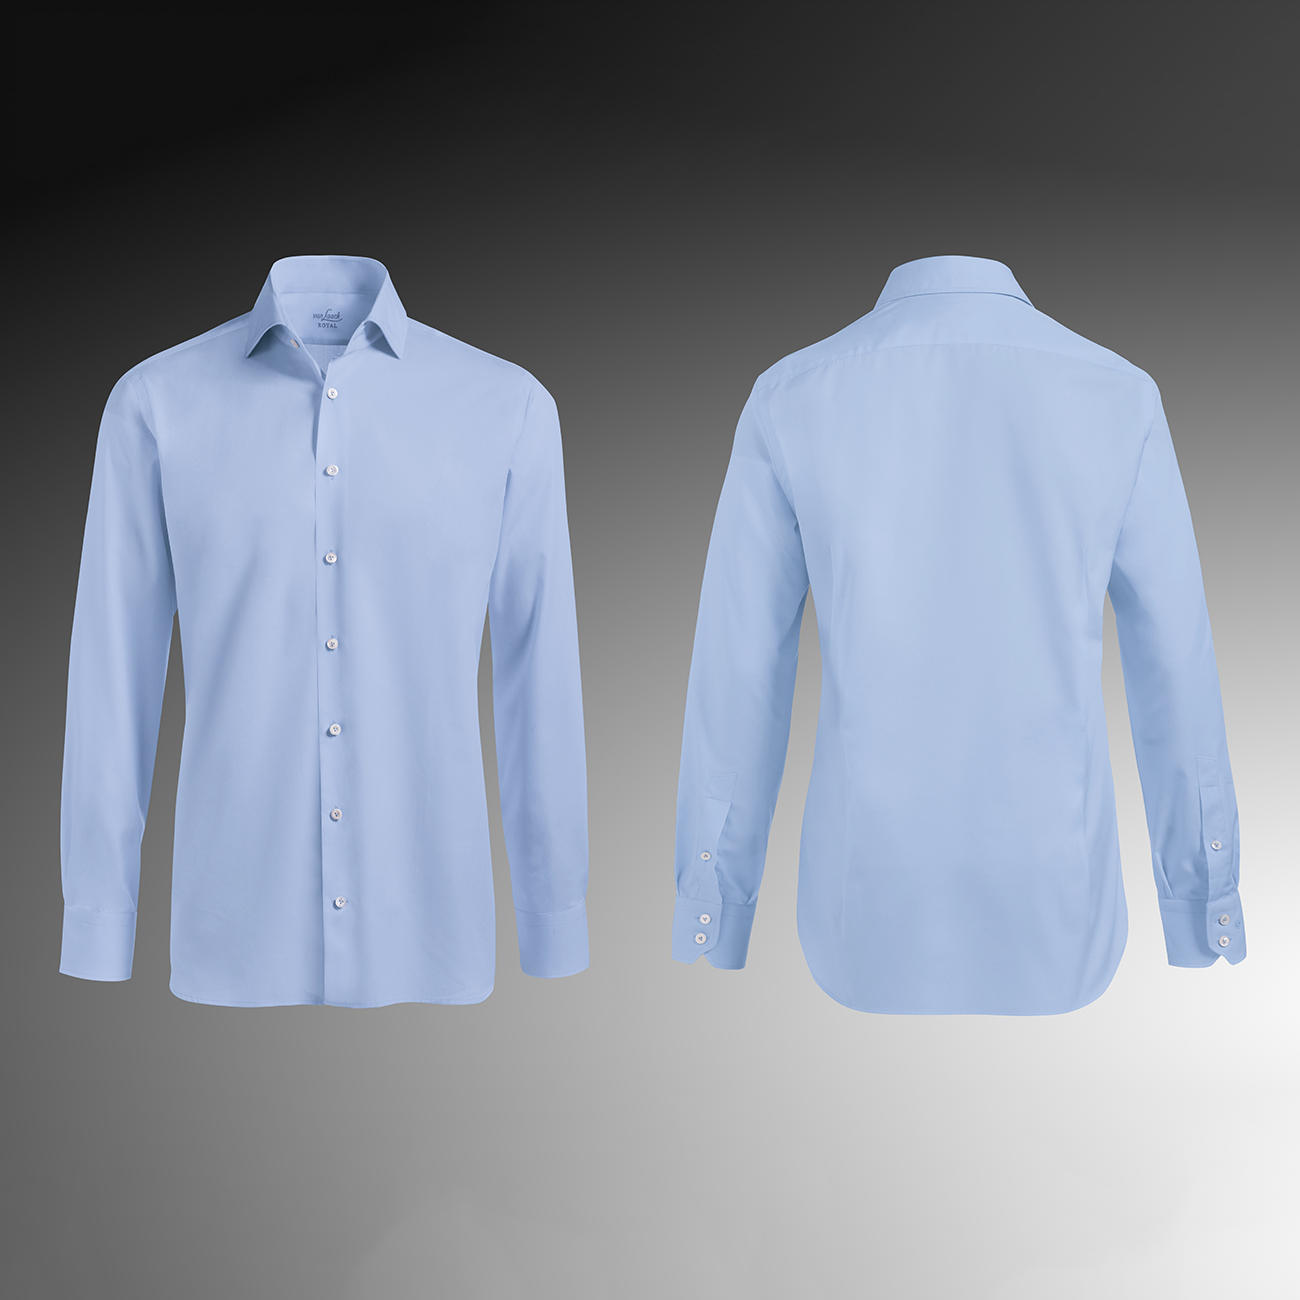 Van Laack Shirts tailor fit, single button cuffs, light blue RJGWIXA